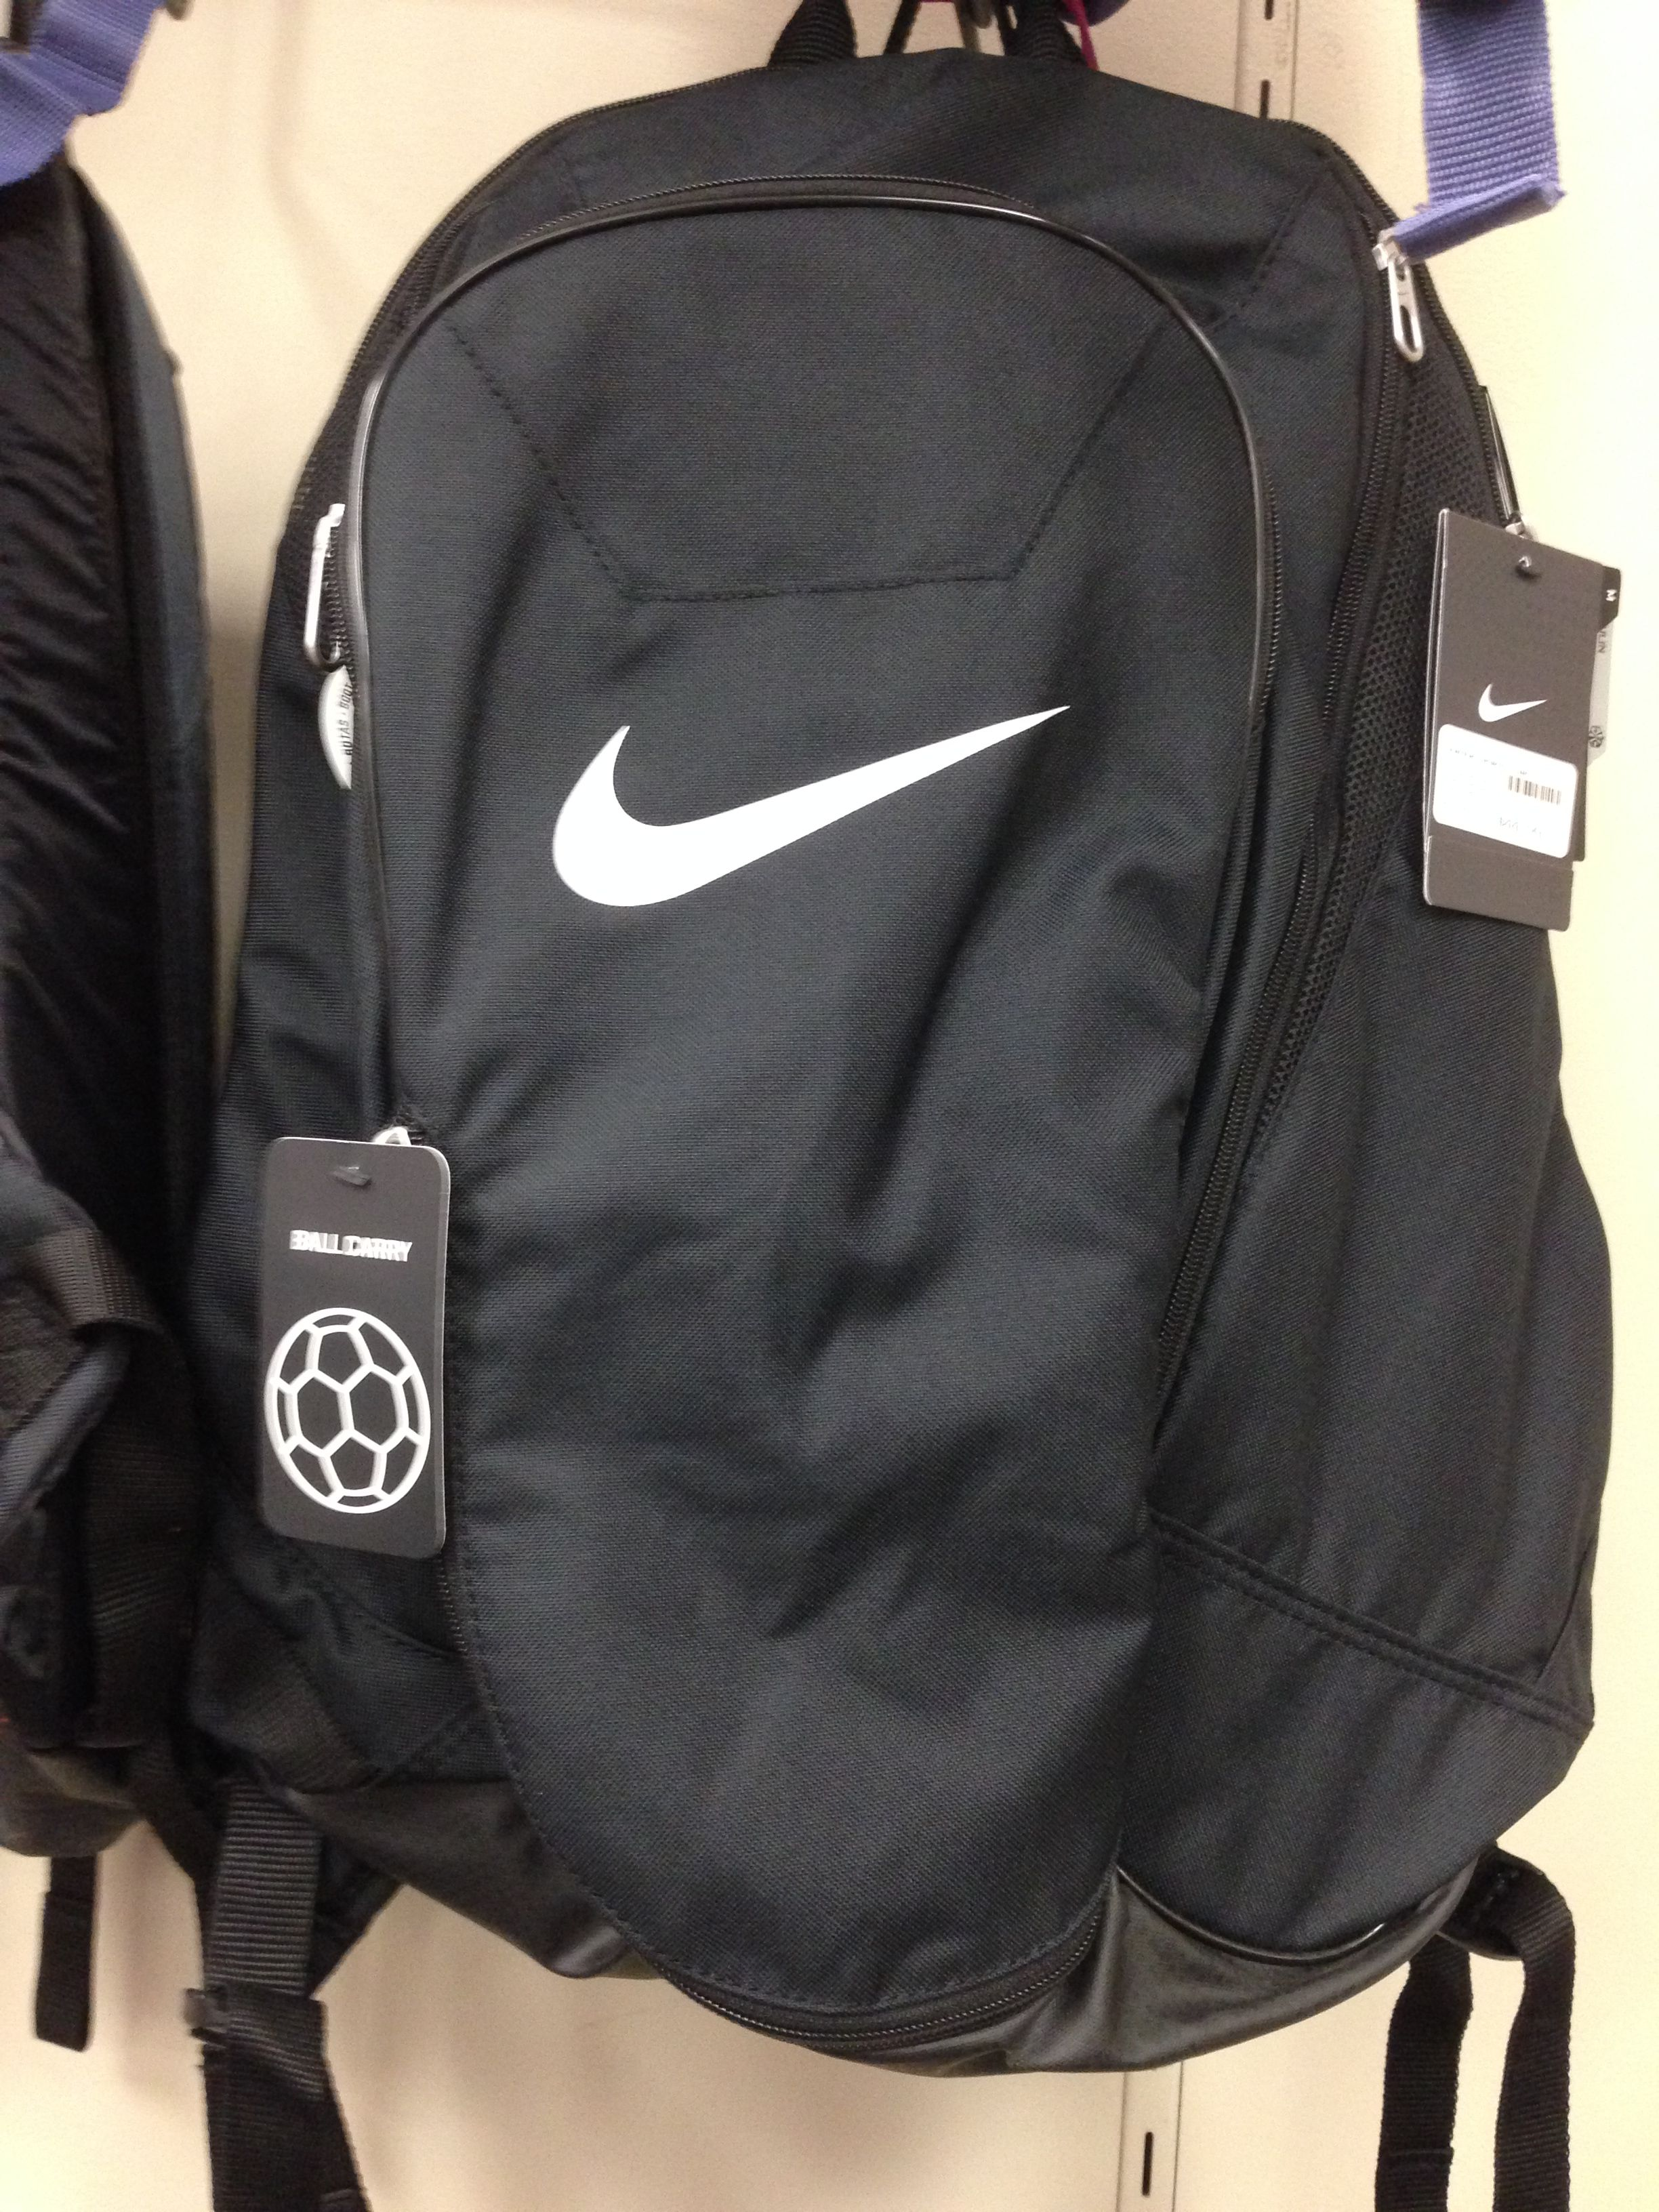 Black Nike Soccer Backpack; Backpack with Ball Carry